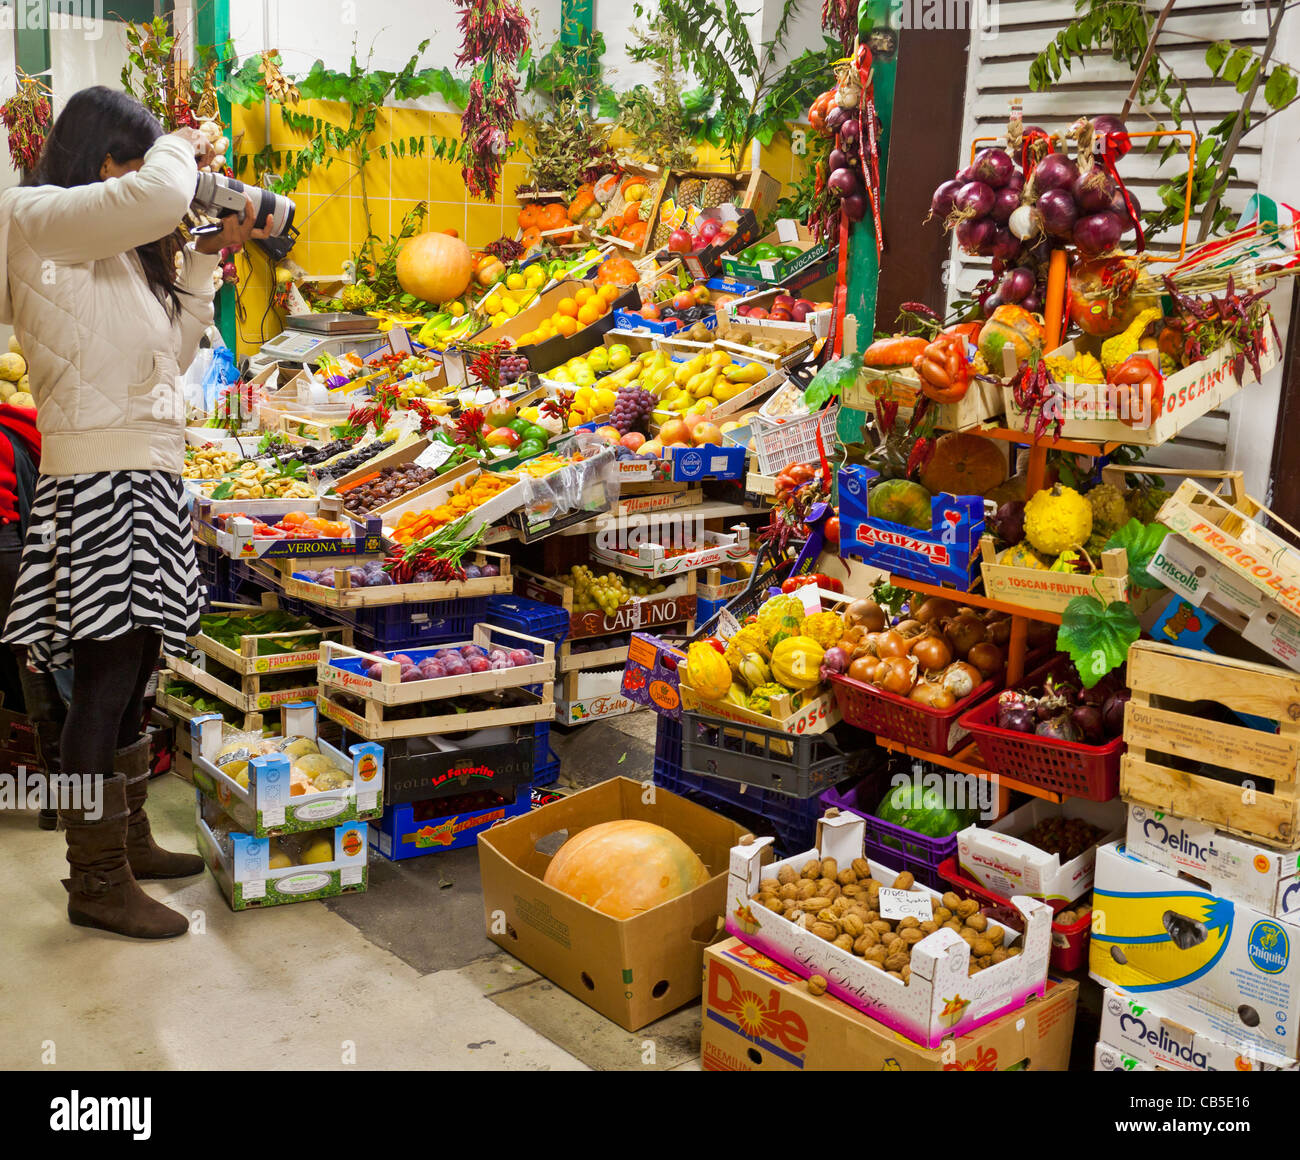 Young woman photographer taking a photograph in the Mercato centrale, Florence, Italy. fruit, vegetables, - Stock Image